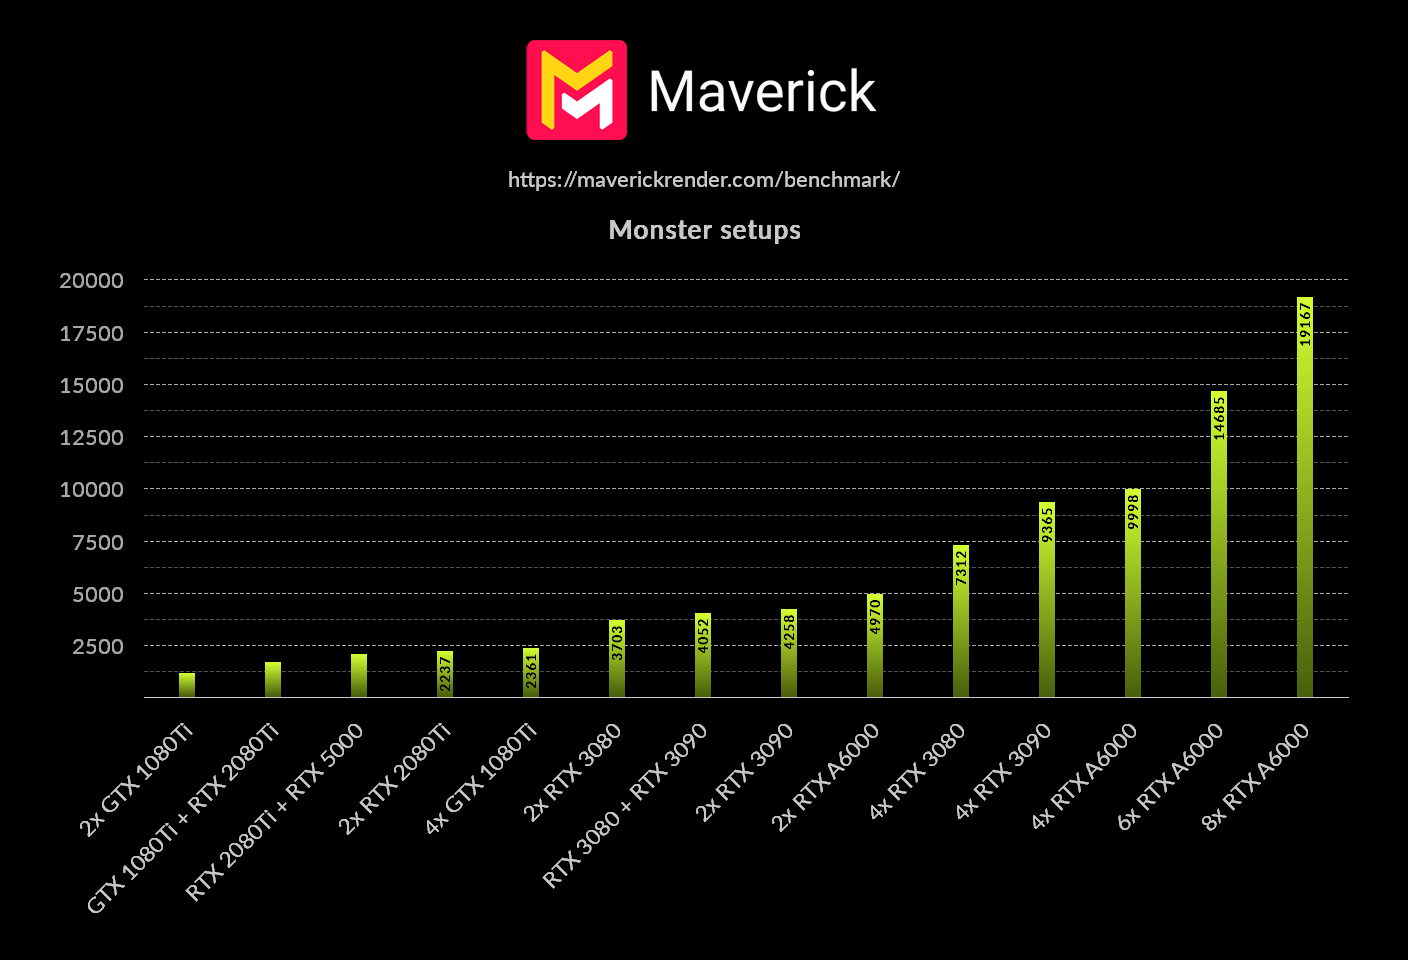 maverickrender-benchmark-monster-scores